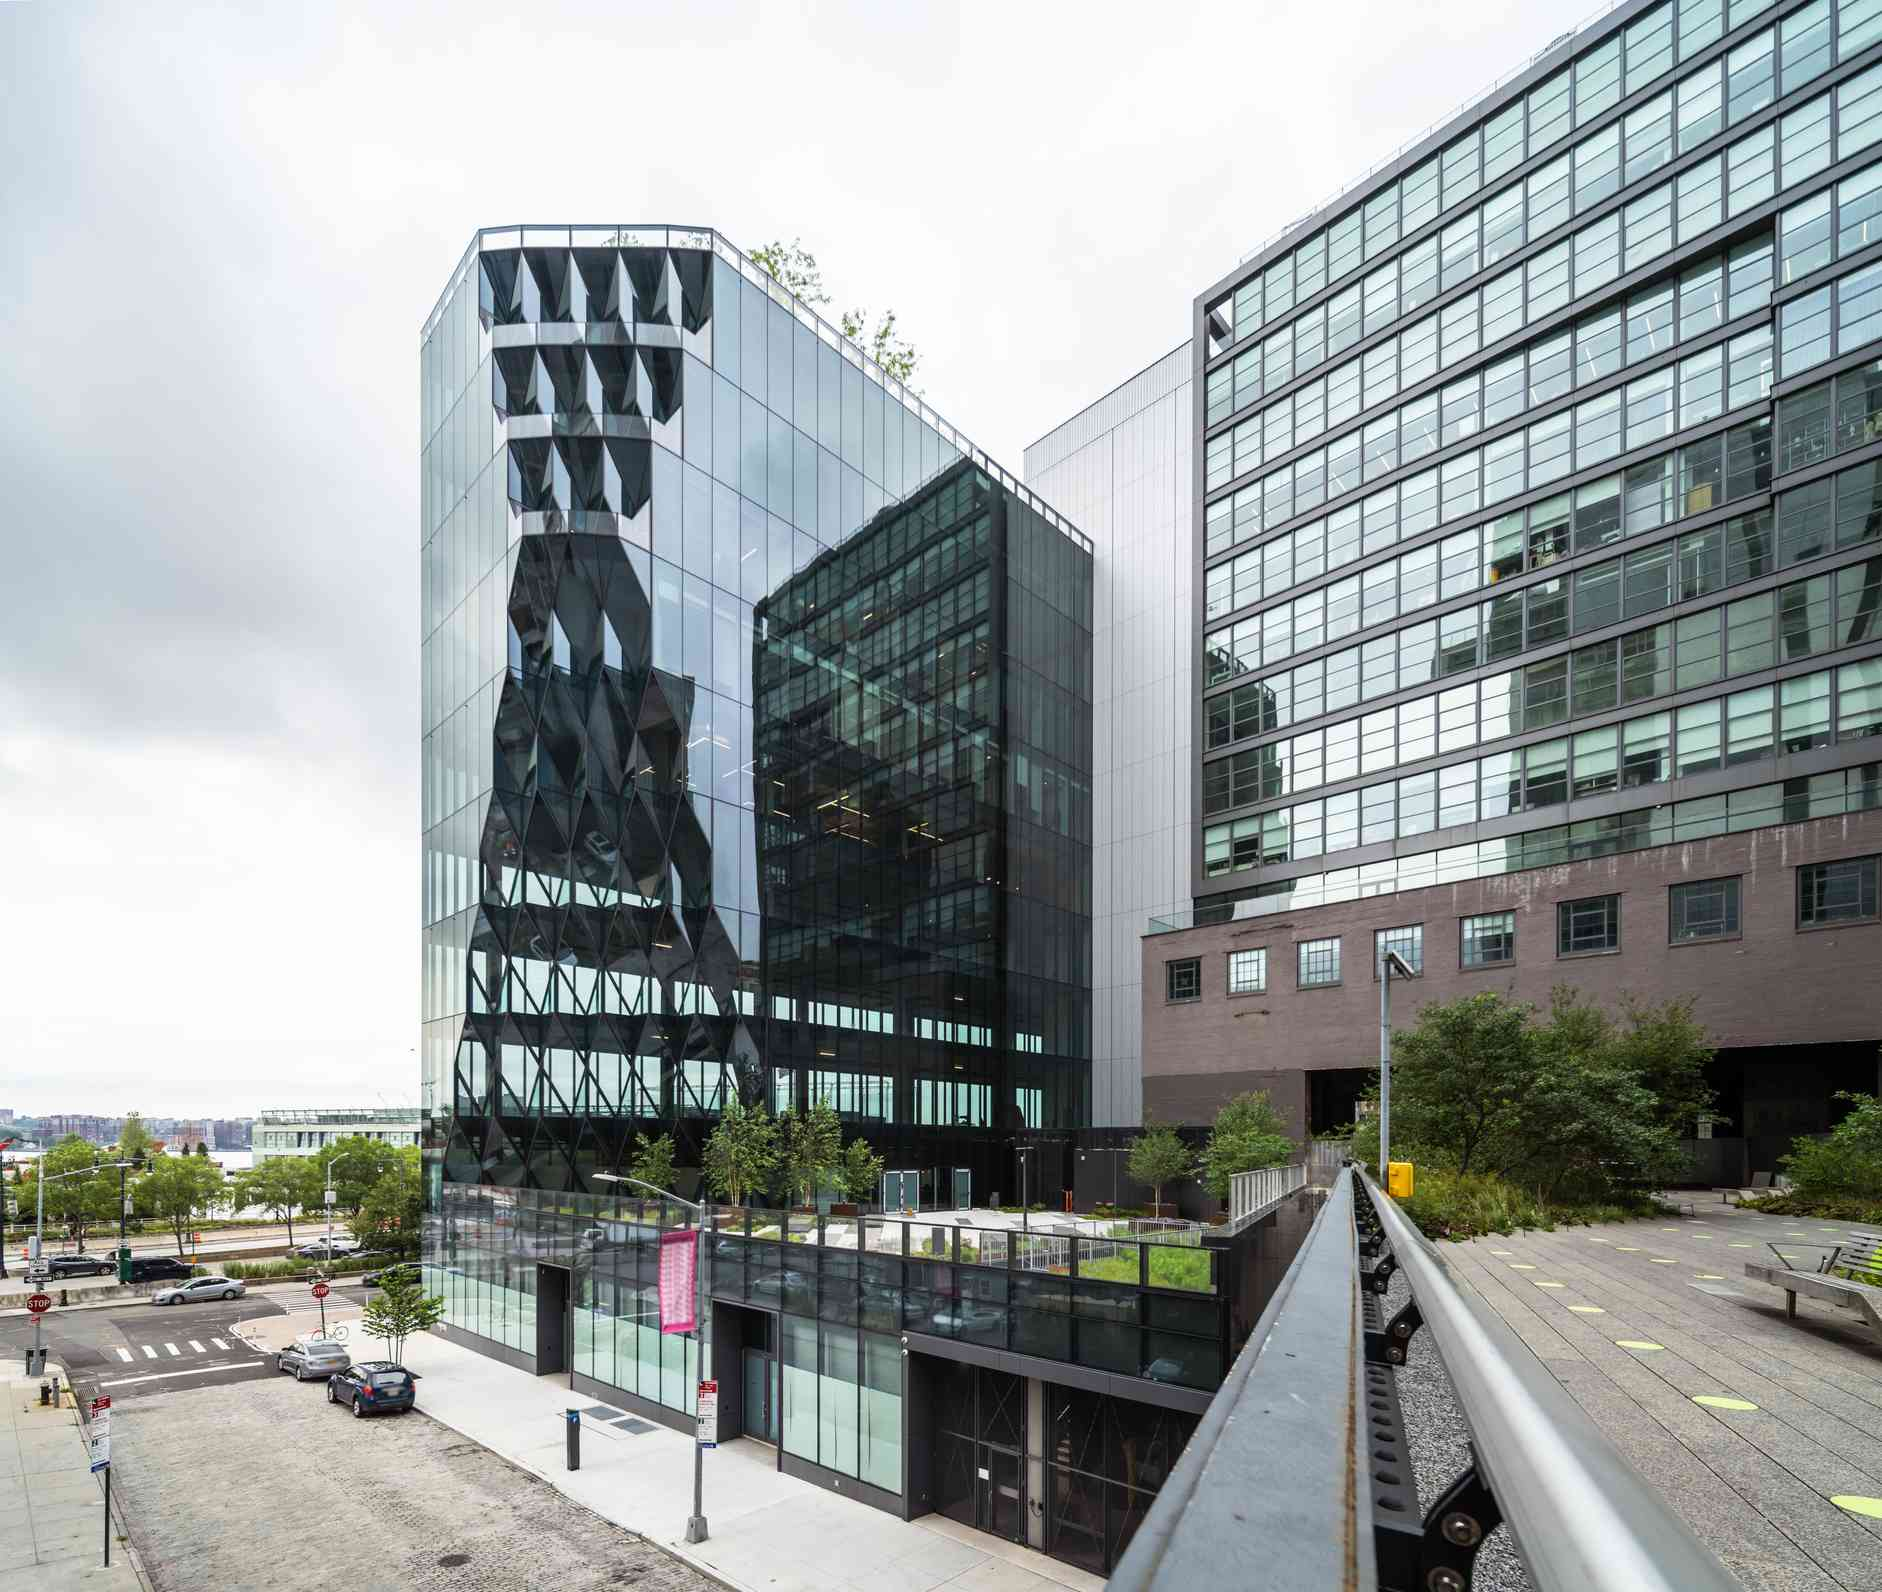 High Line Park View of Glass Clad Office Building - New York